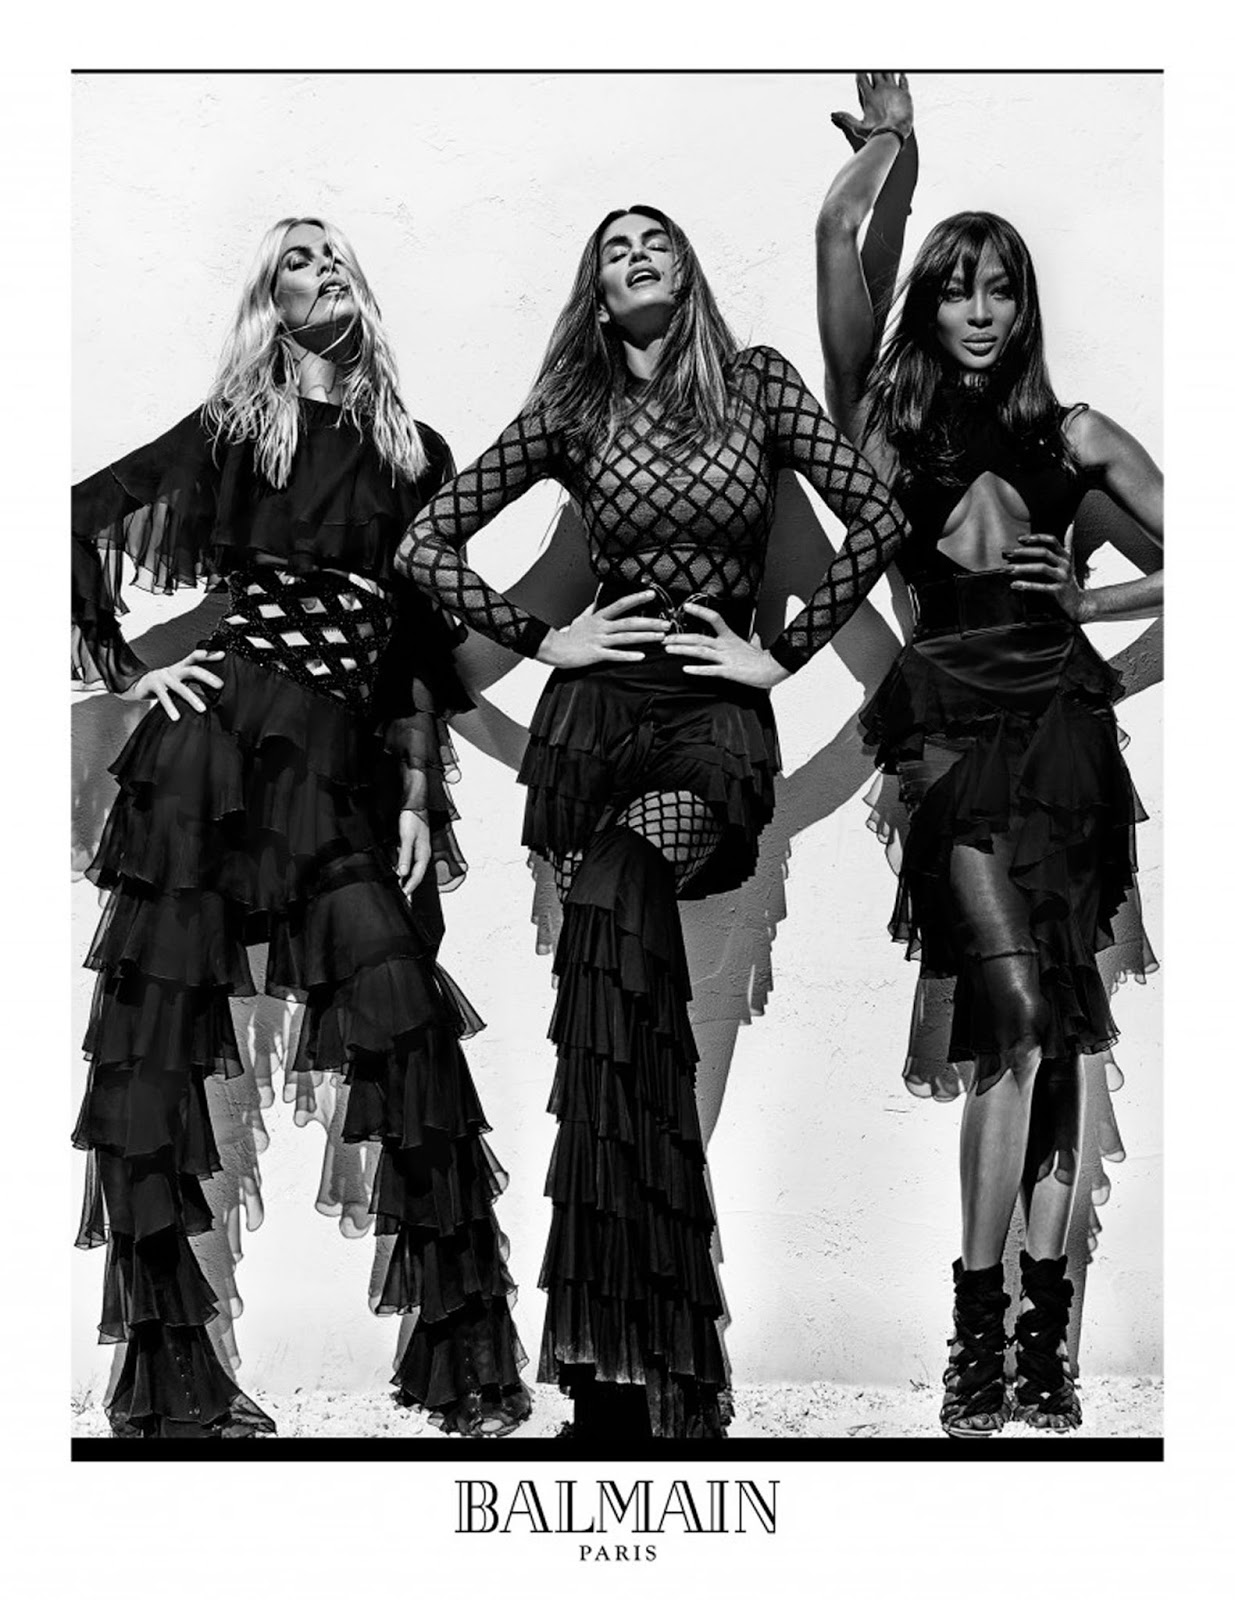 News on Fashion - January 2016 - Balmain